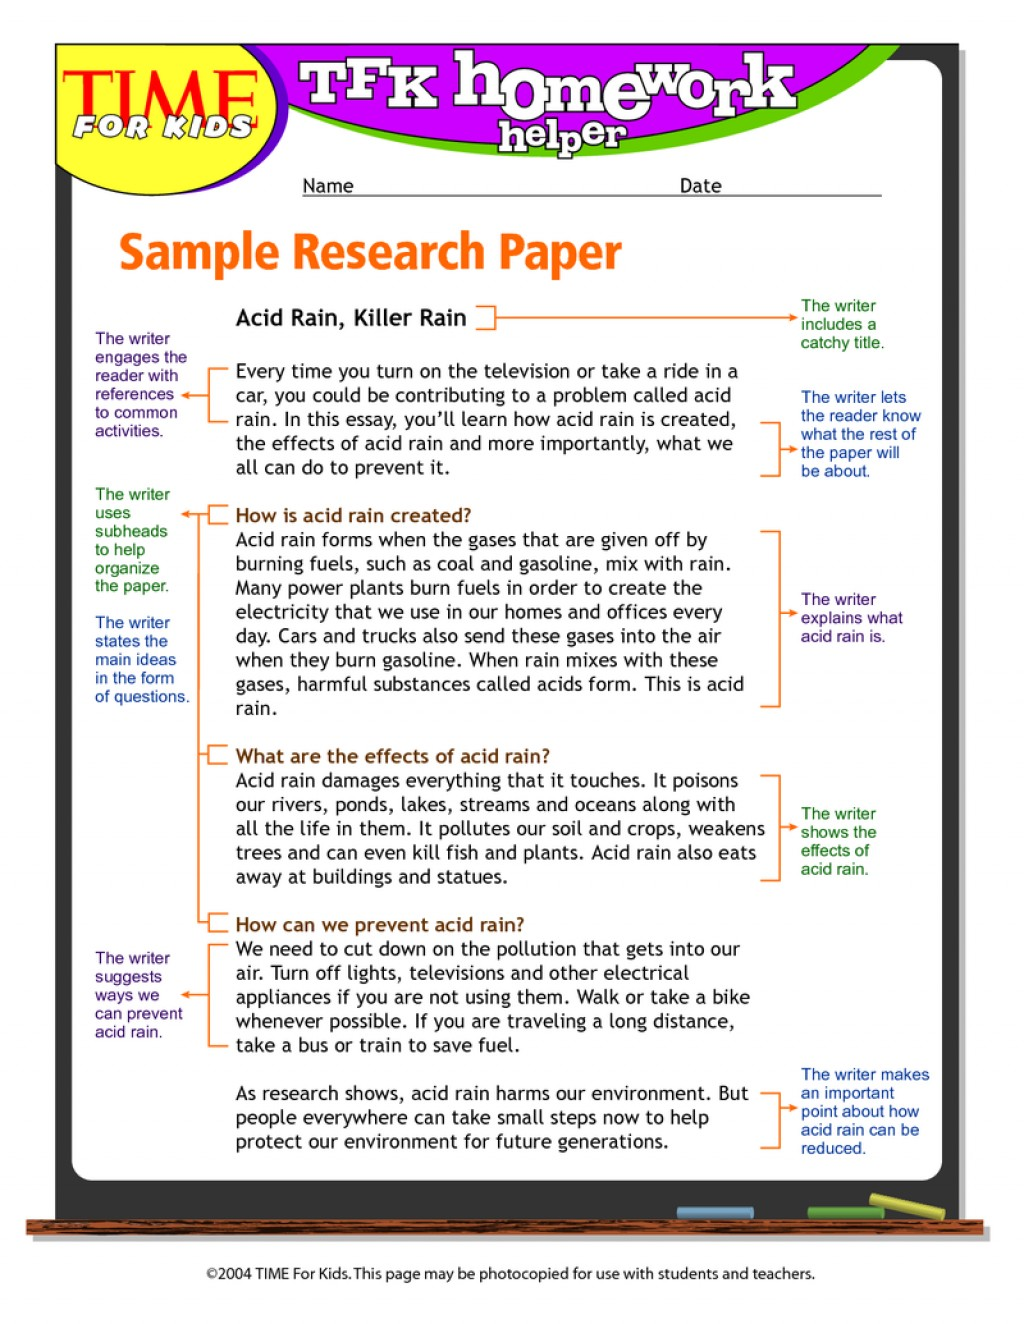 009 How To Do Research Top A Paper Write Title Page Reference Cover For In Apa Format Large